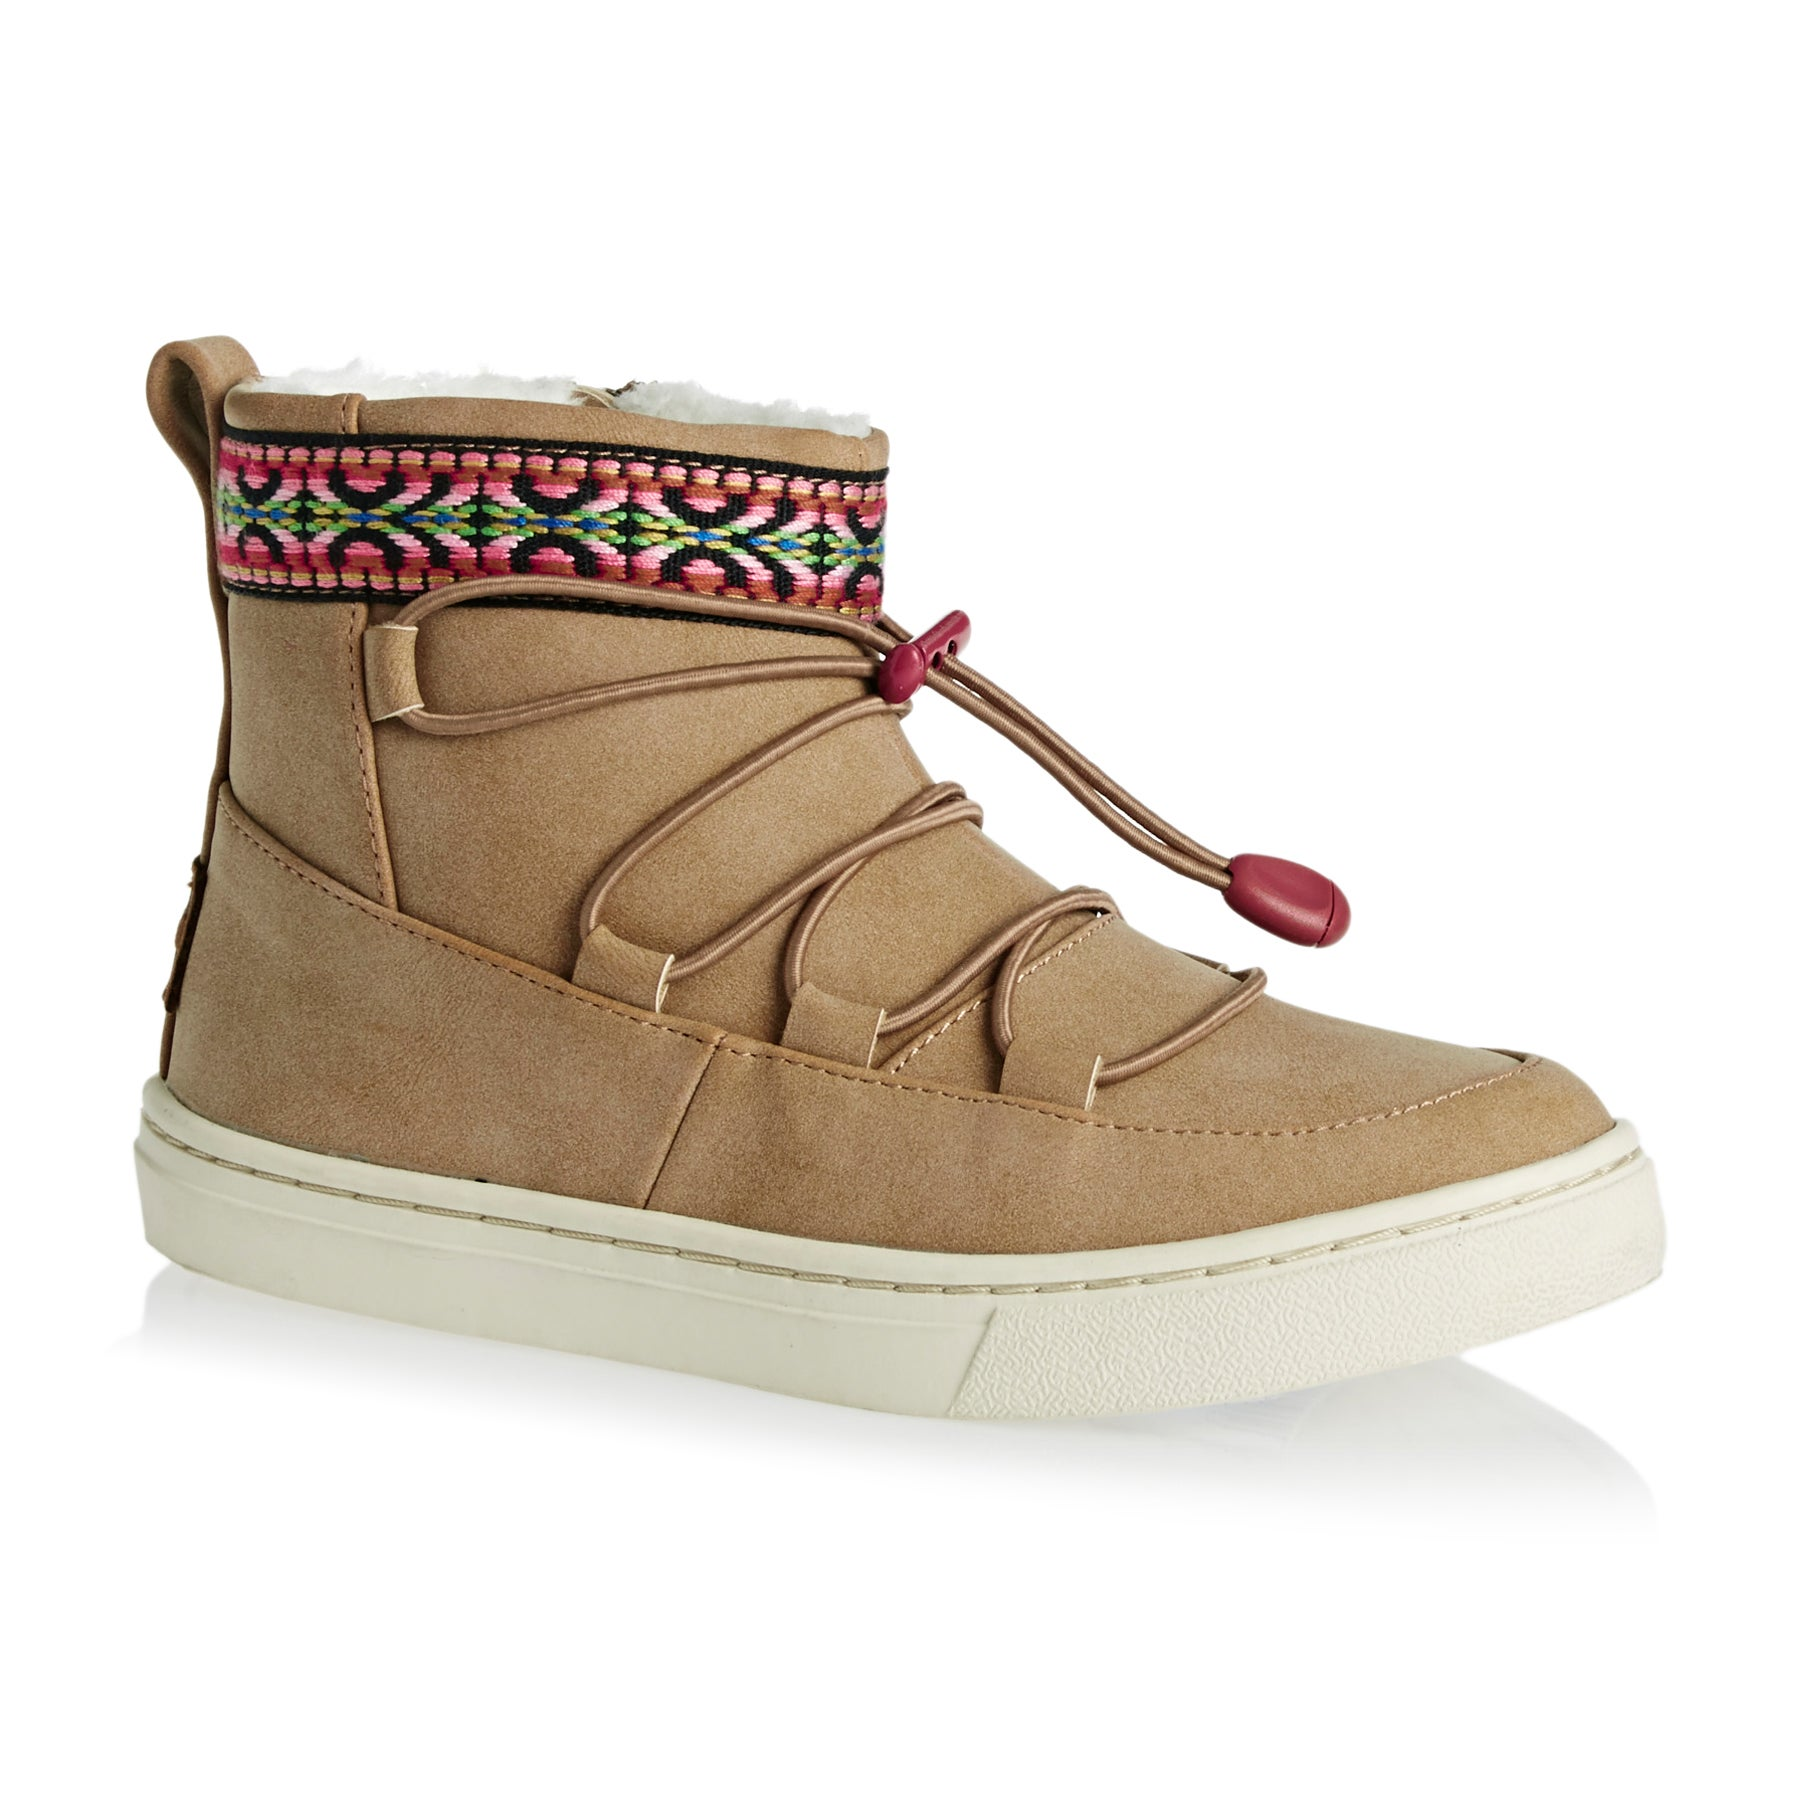 Toms Youth Alpine Girls Boots - Toffee Synthetic Suede